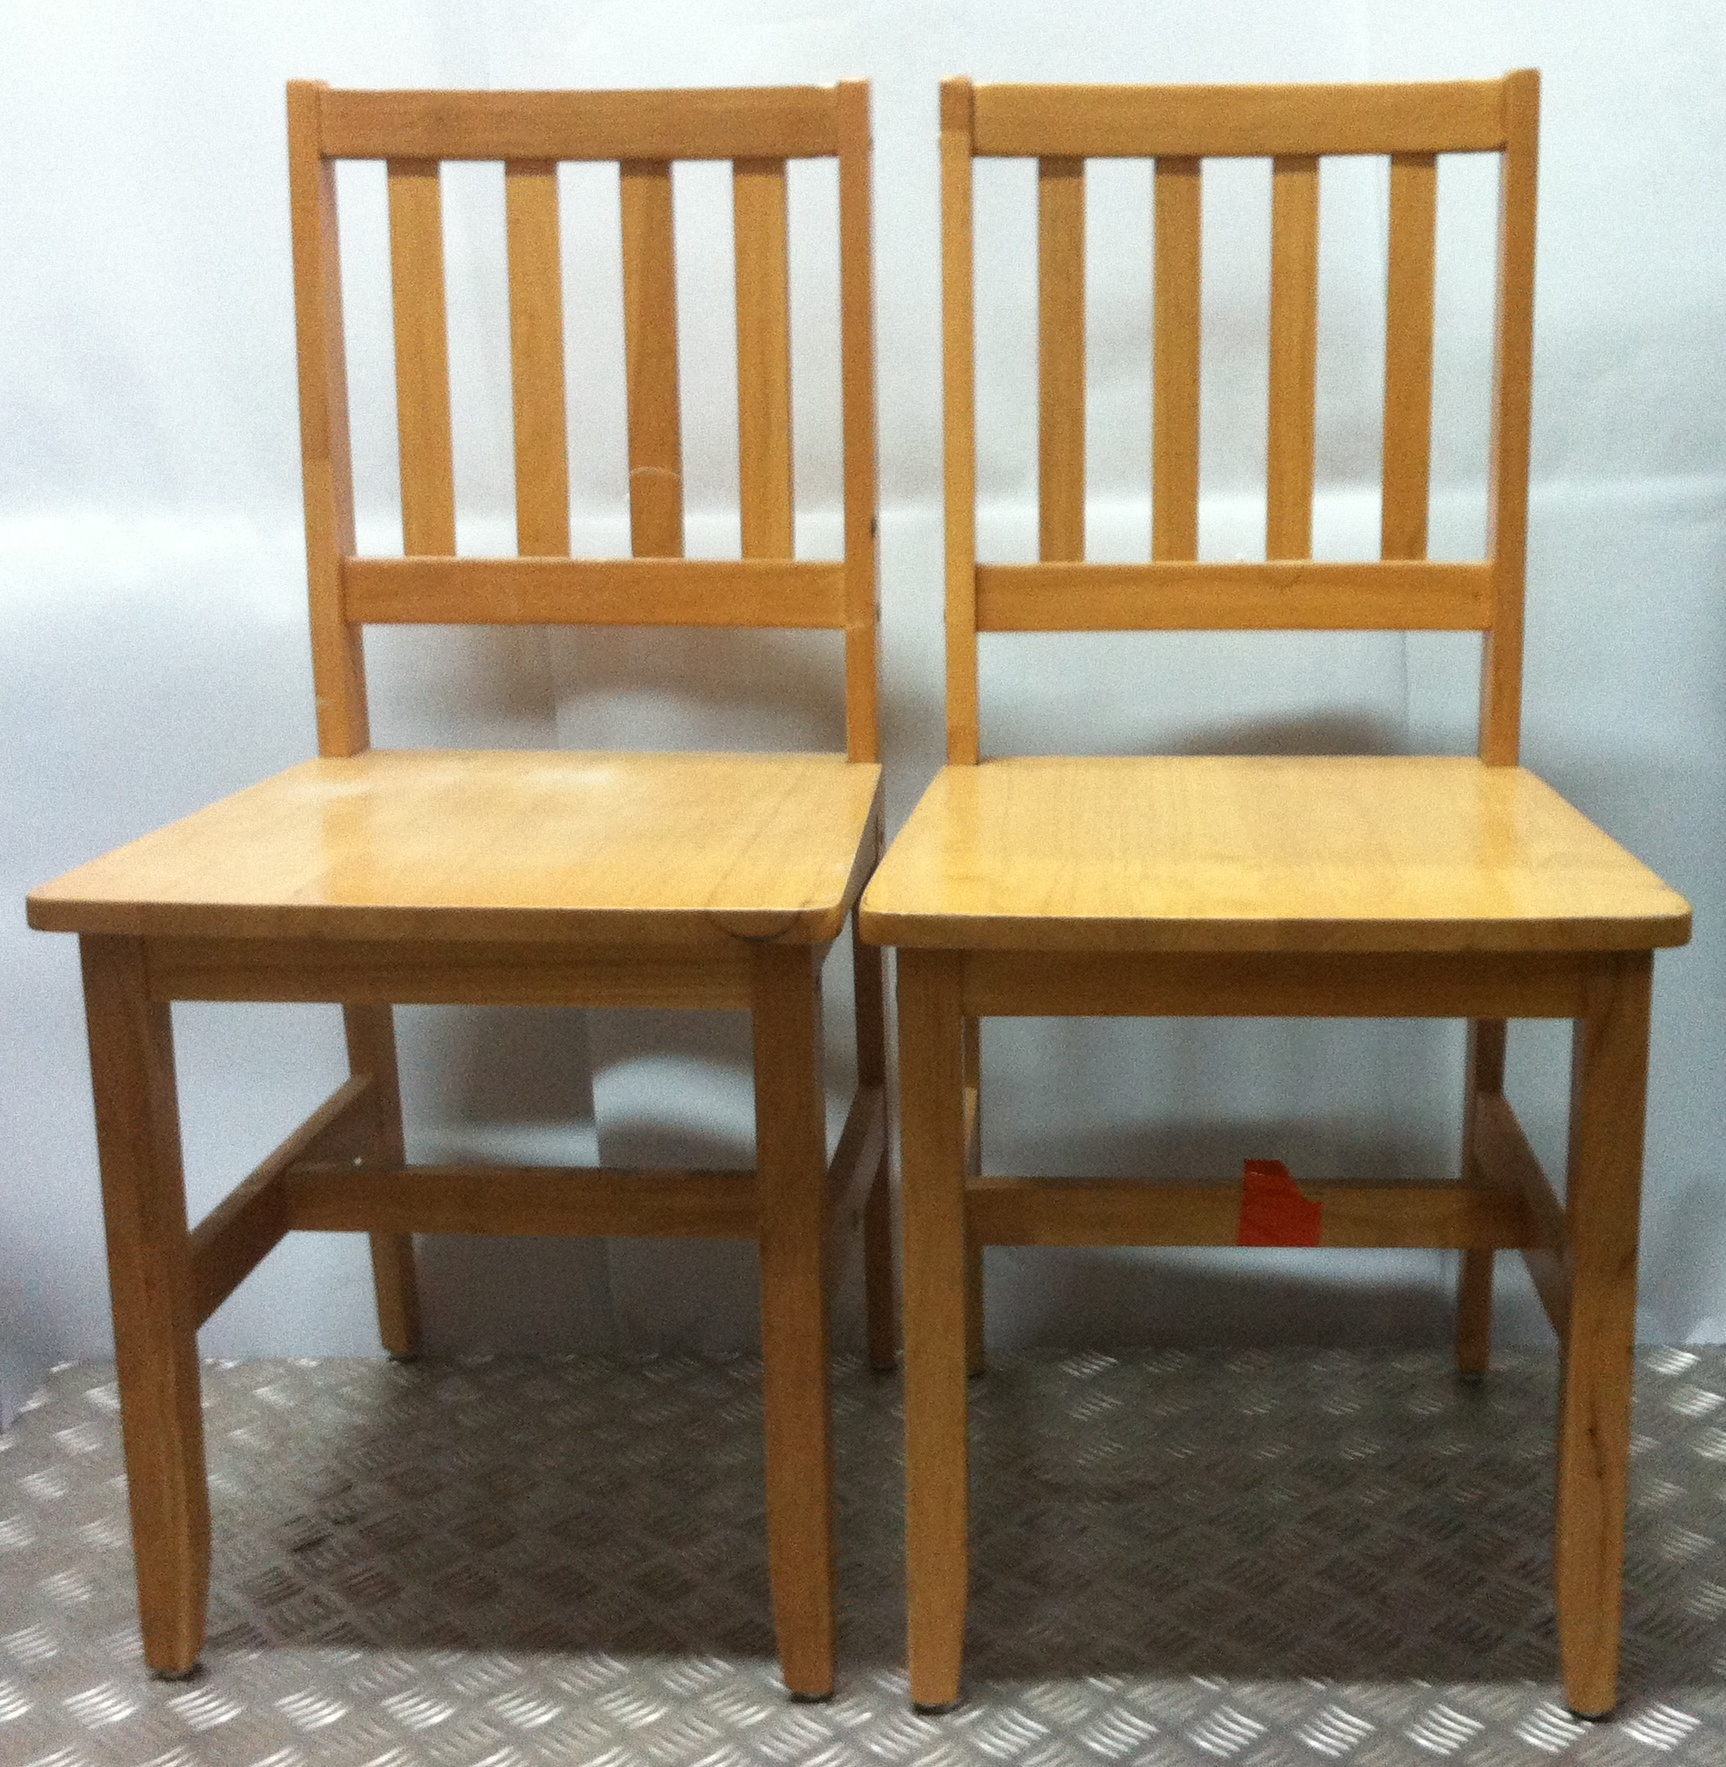 Lot 21 - 4x Small Wooden Chairs